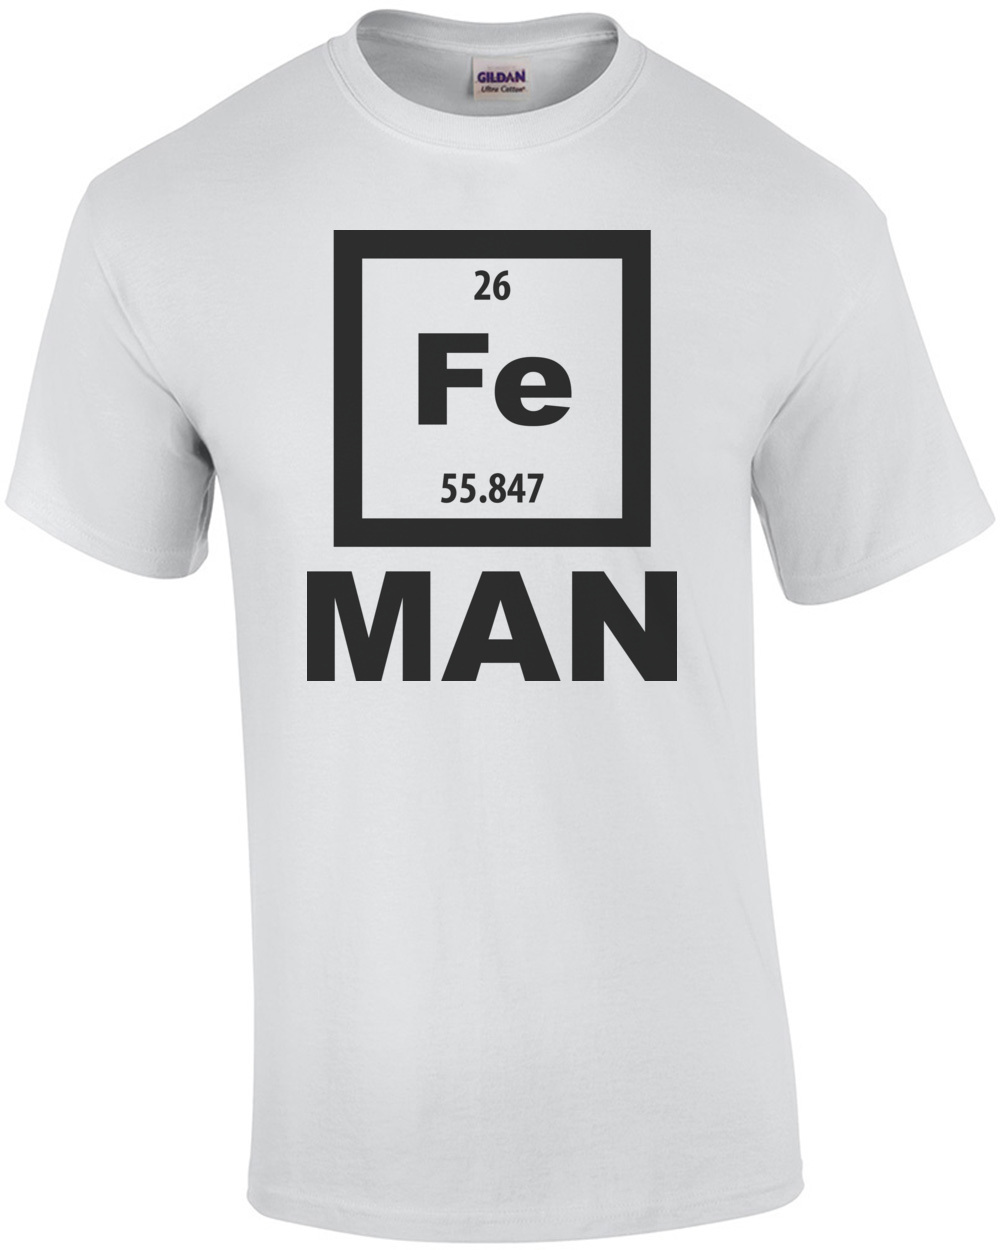 Periodic table shirt gallery periodic table images fe man iron man element periodic table t shirt gamestrikefo gallery gamestrikefo Choice Image